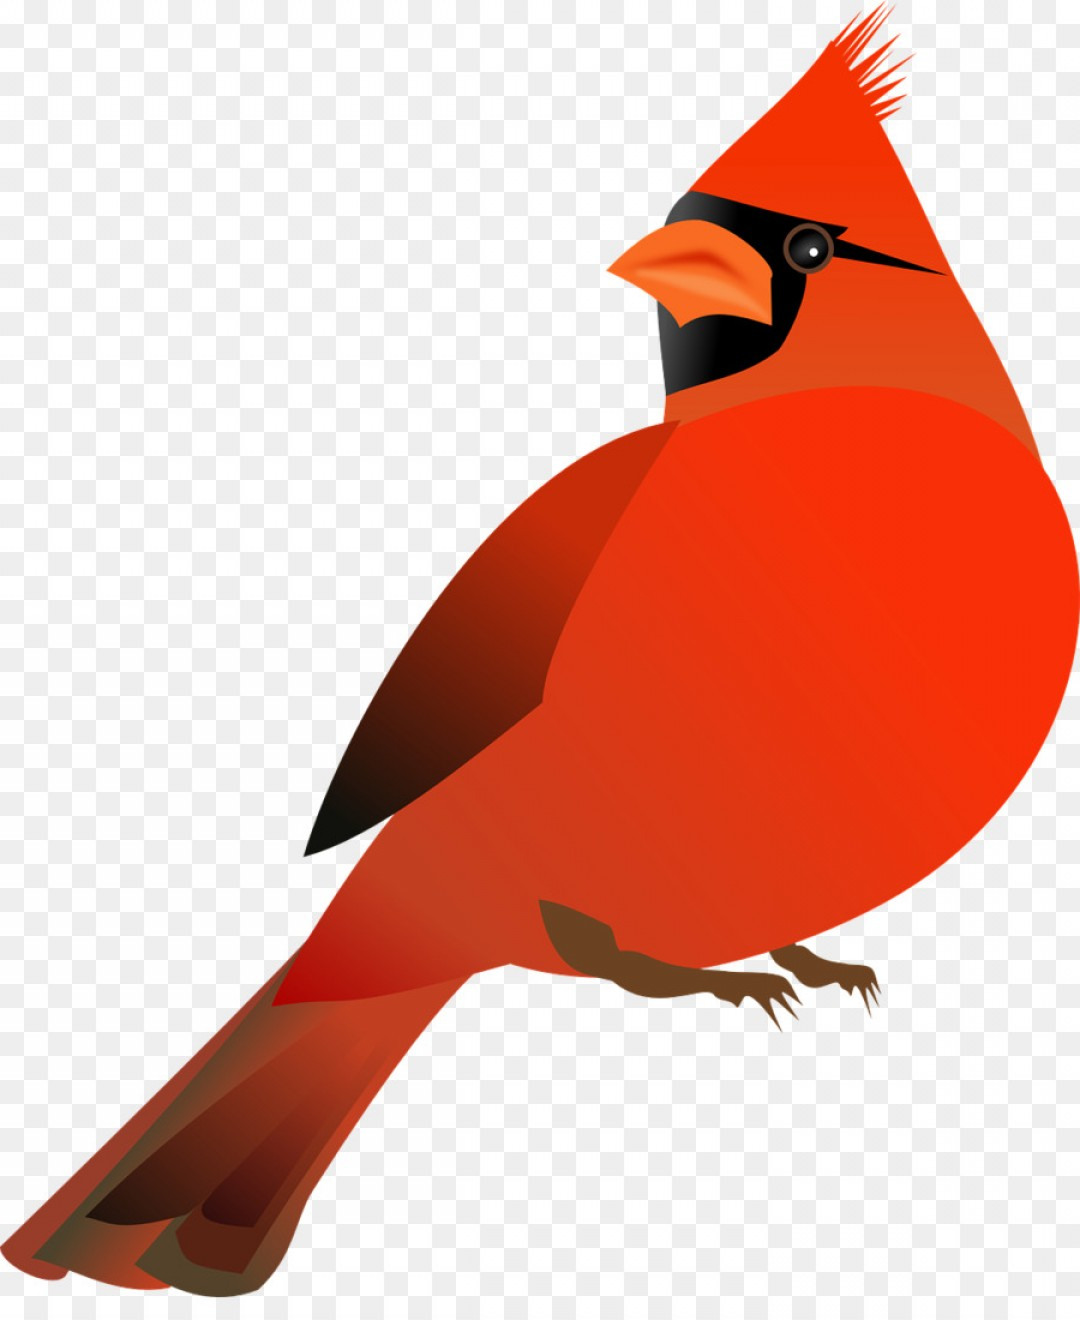 Free Cardinal Clipart st louis cardinals, Download Free Clip Art on.